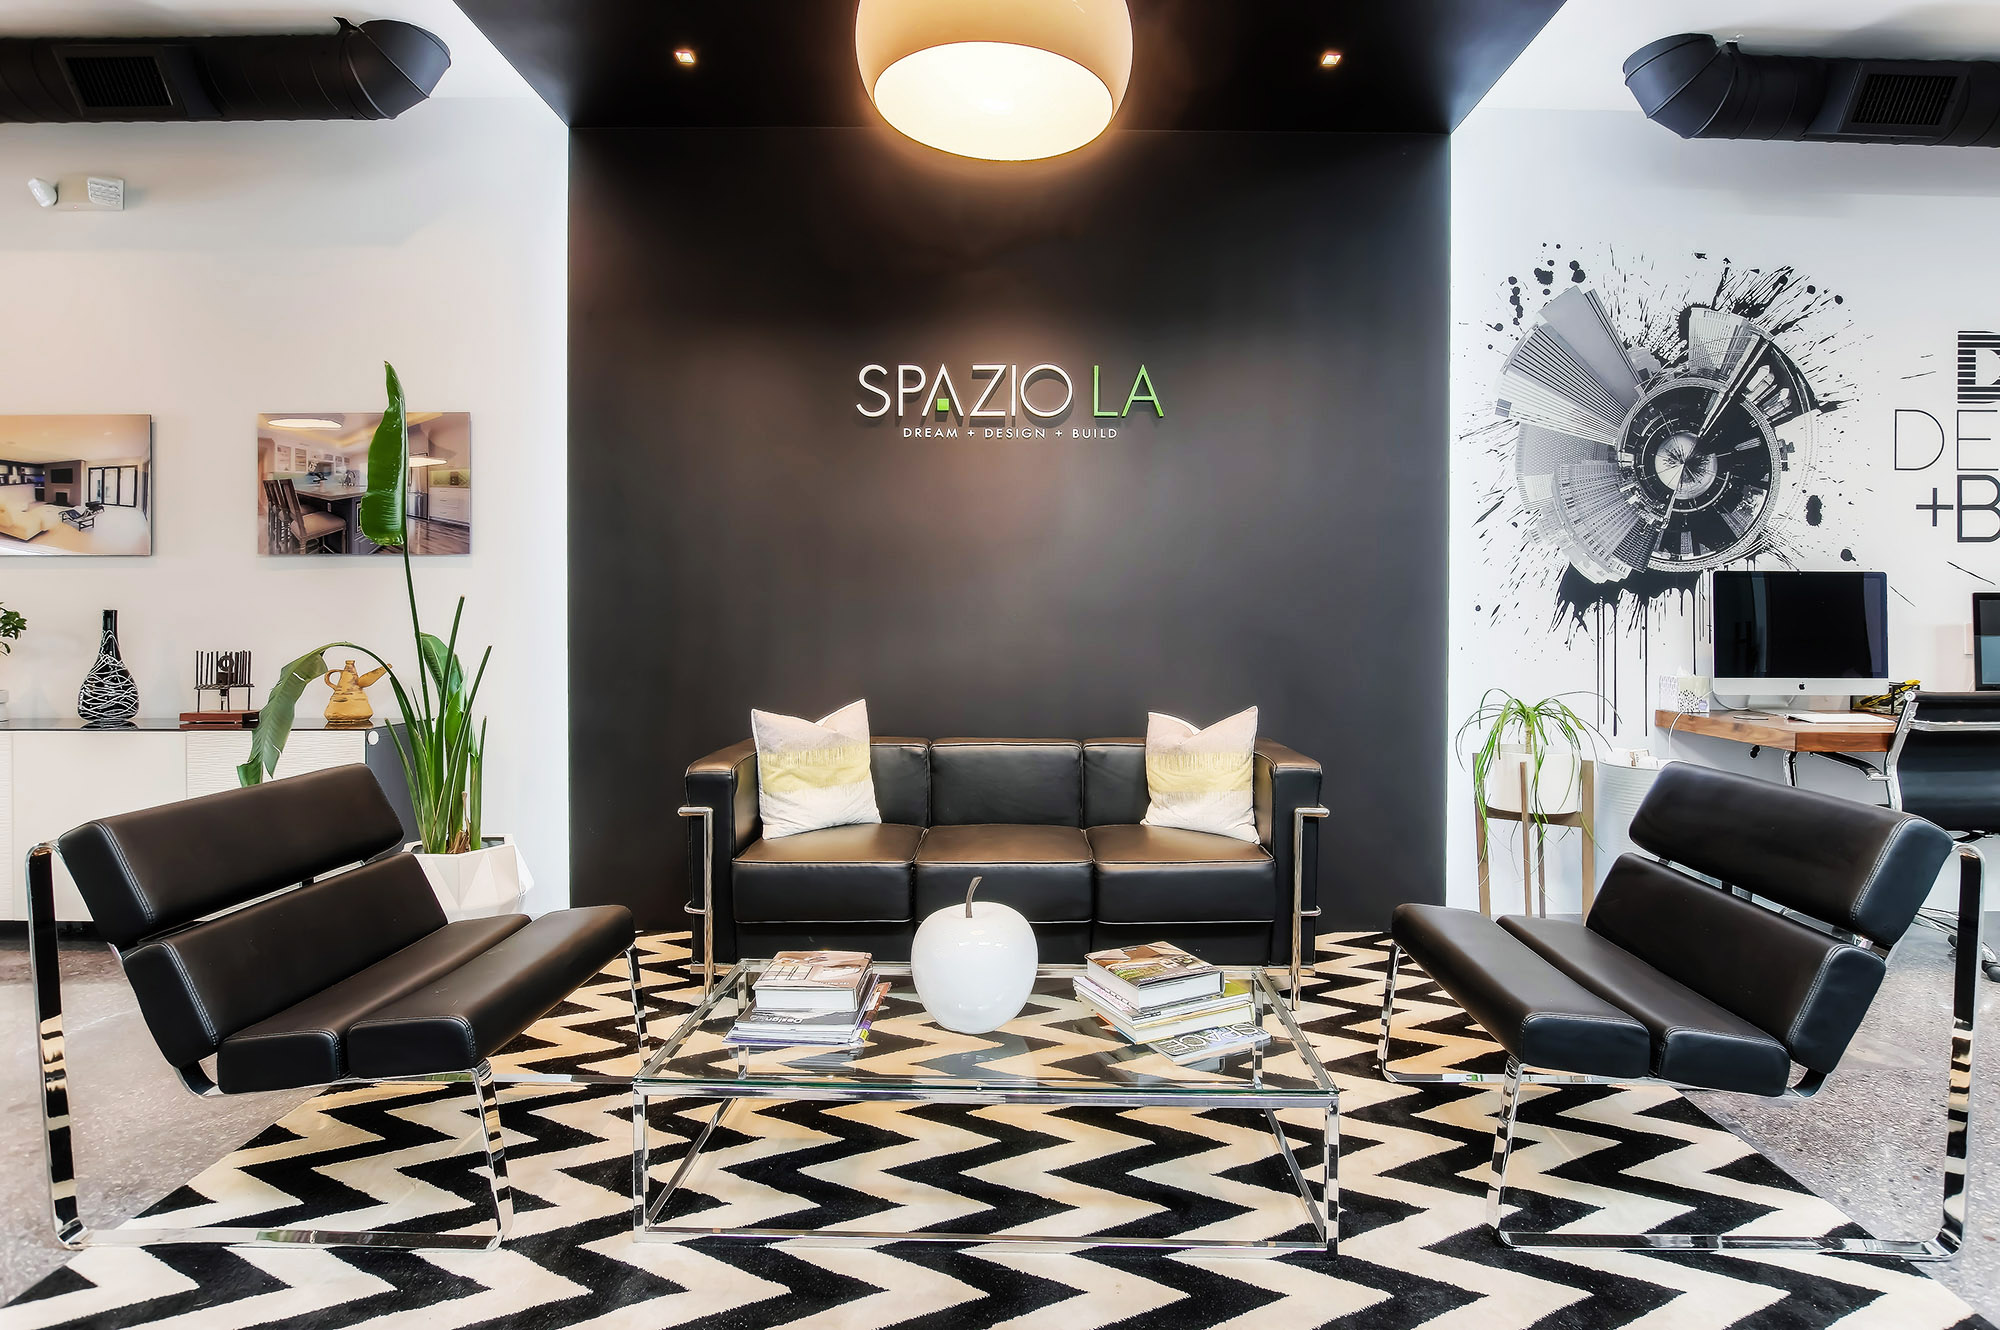 Spazio LA new office banner view web edited.jpg